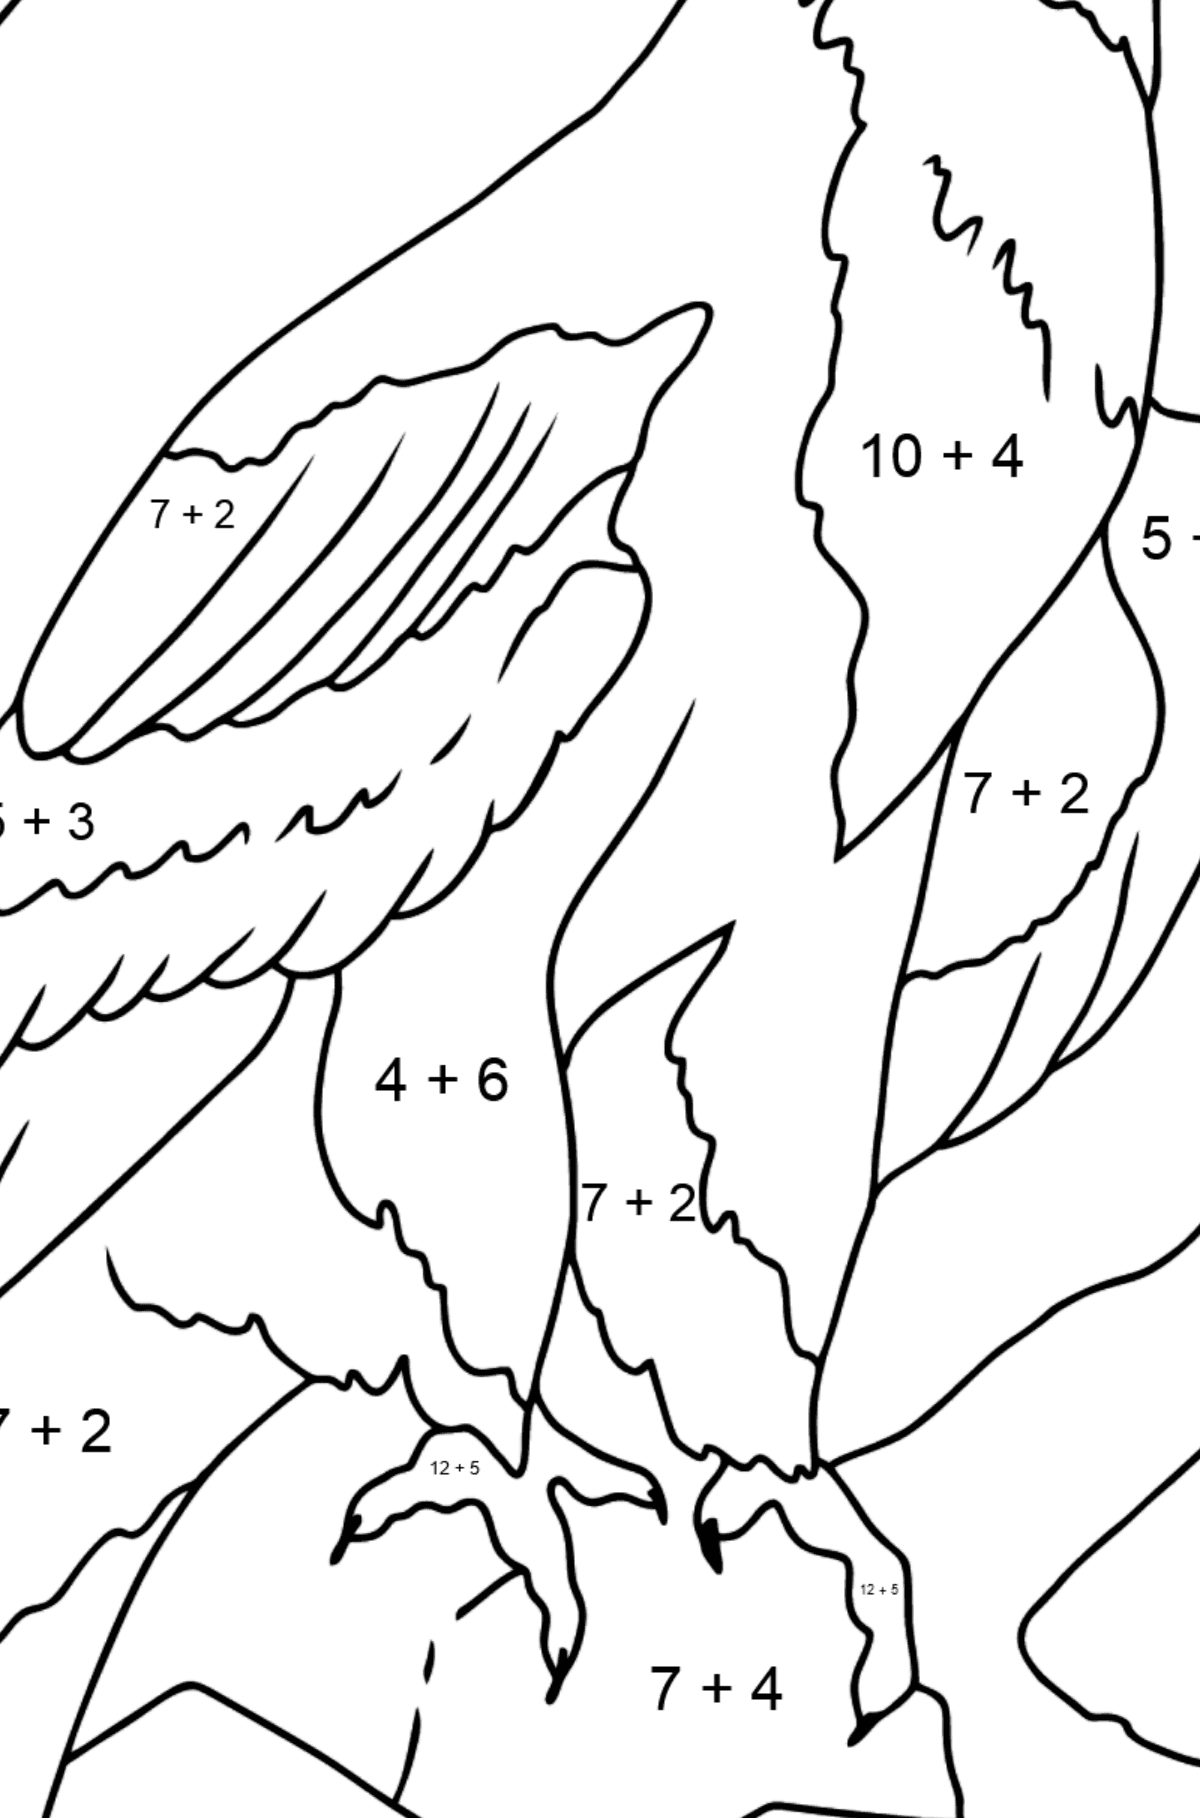 Coloring Page - An Alpine Eagle - Math Coloring - Addition for Kids